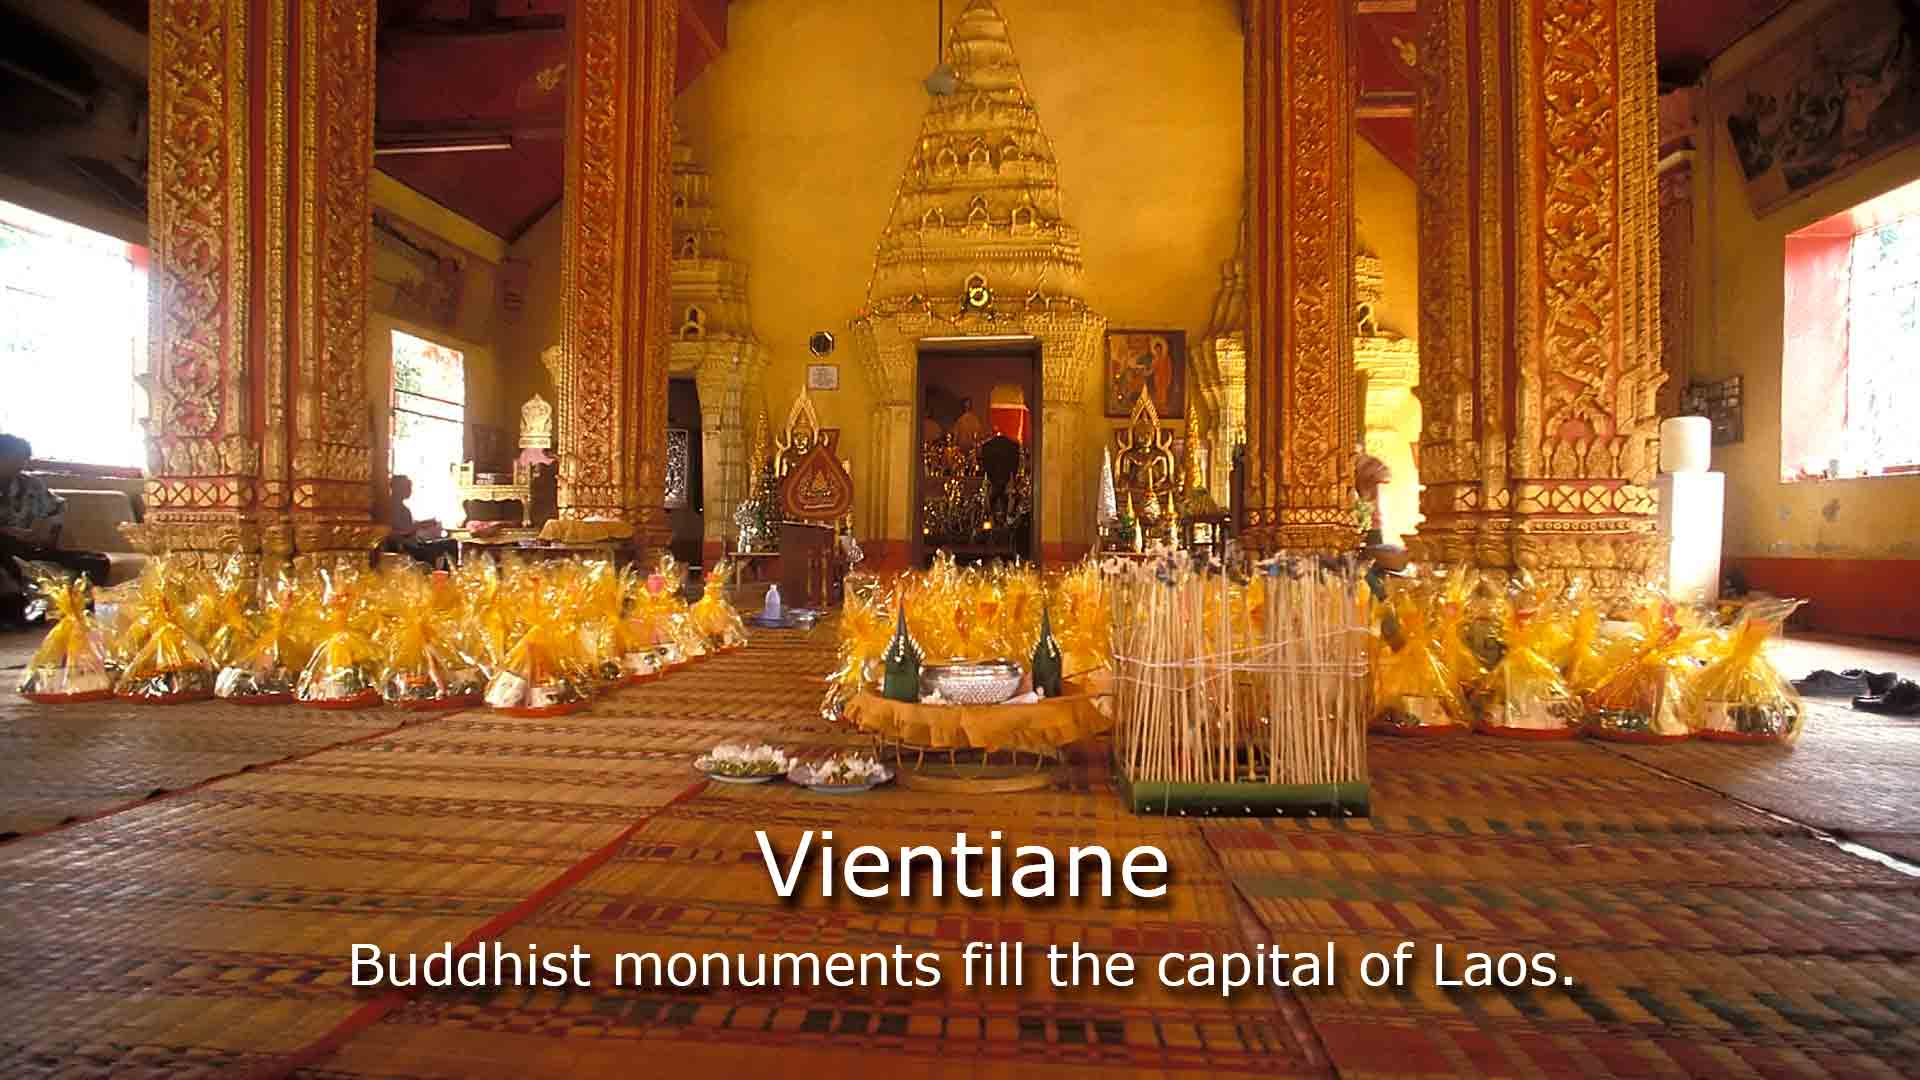 Buddhist monuments fill the capital of Laos